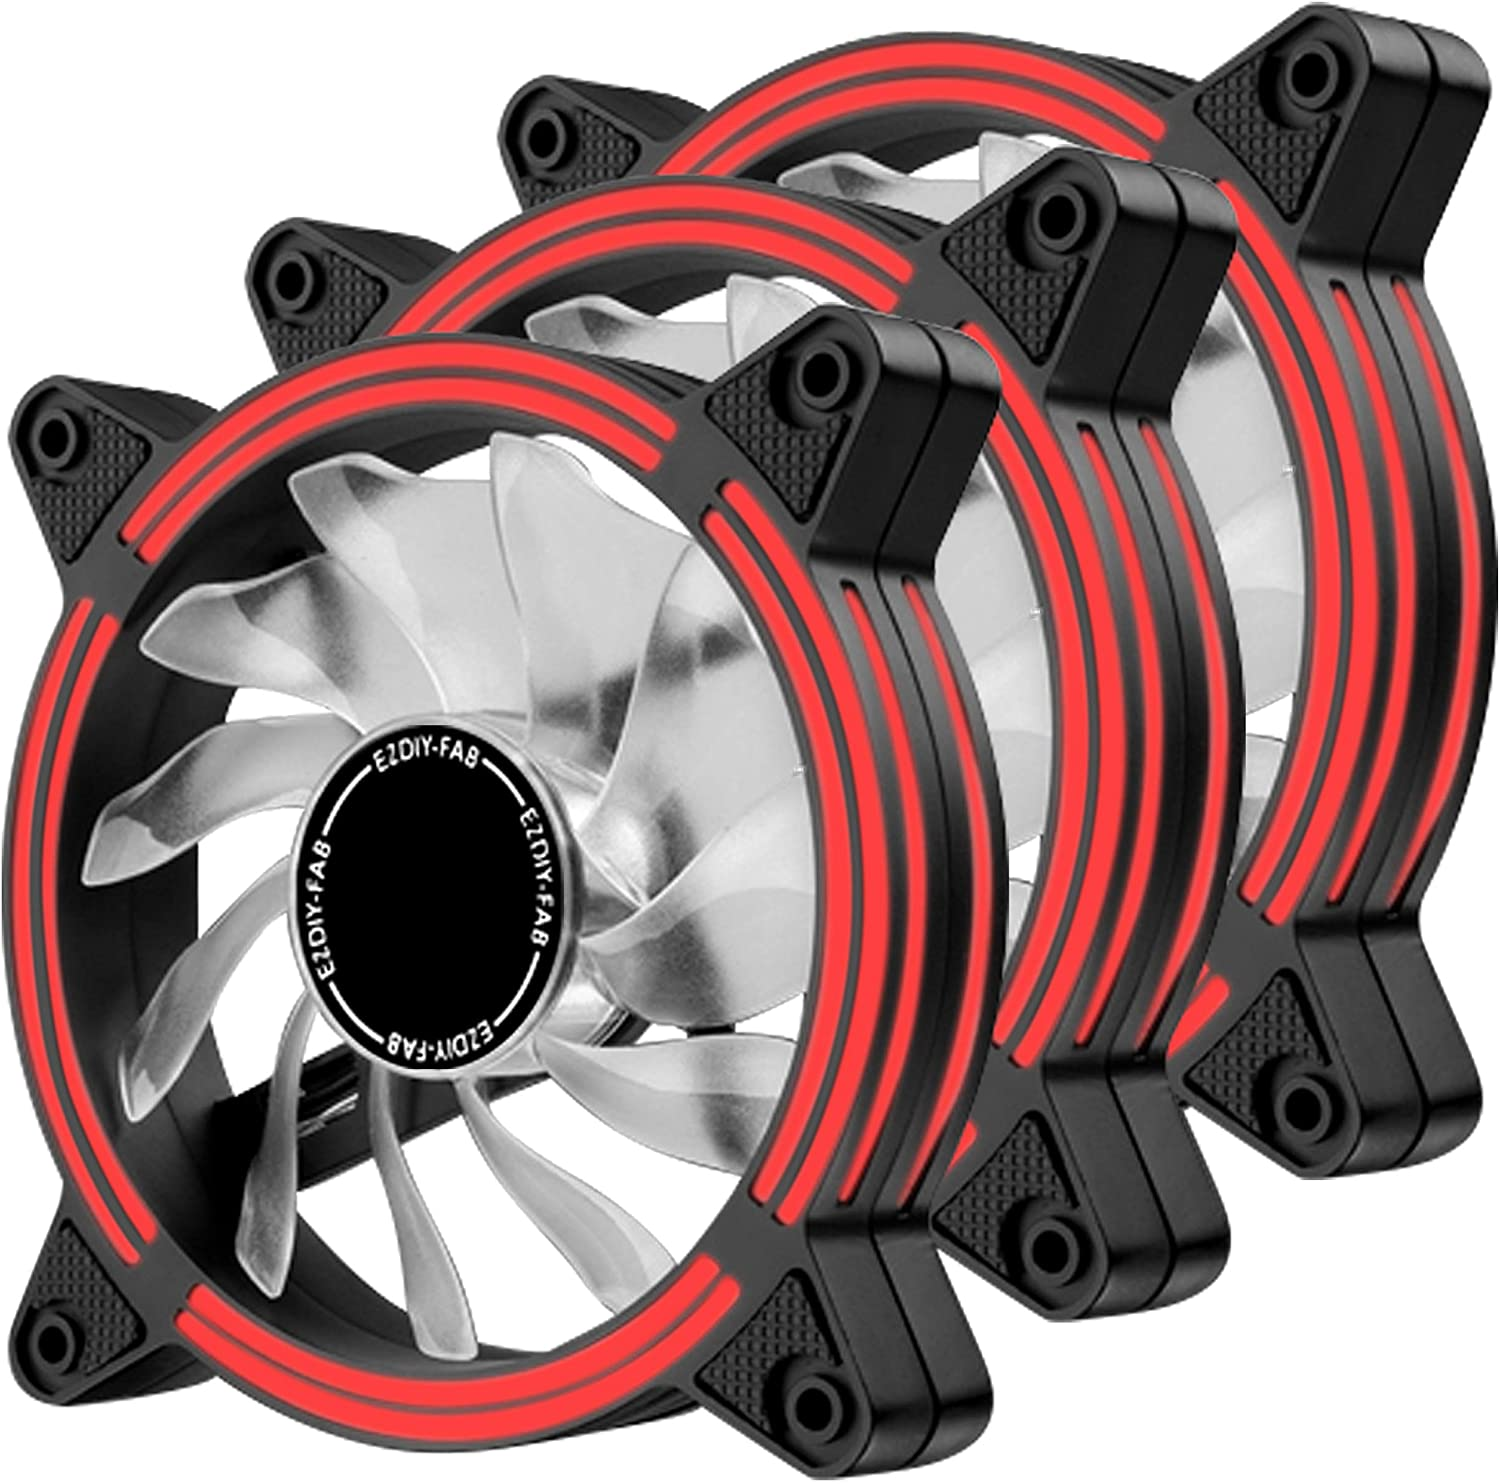 EZDIY-FAB 120mm Red LED Fan, Dual-Frame LED Case Fan for PC Cases, High Airflow Quiet,CPU Coolers, and Radiators,3-Pin-3-Pack